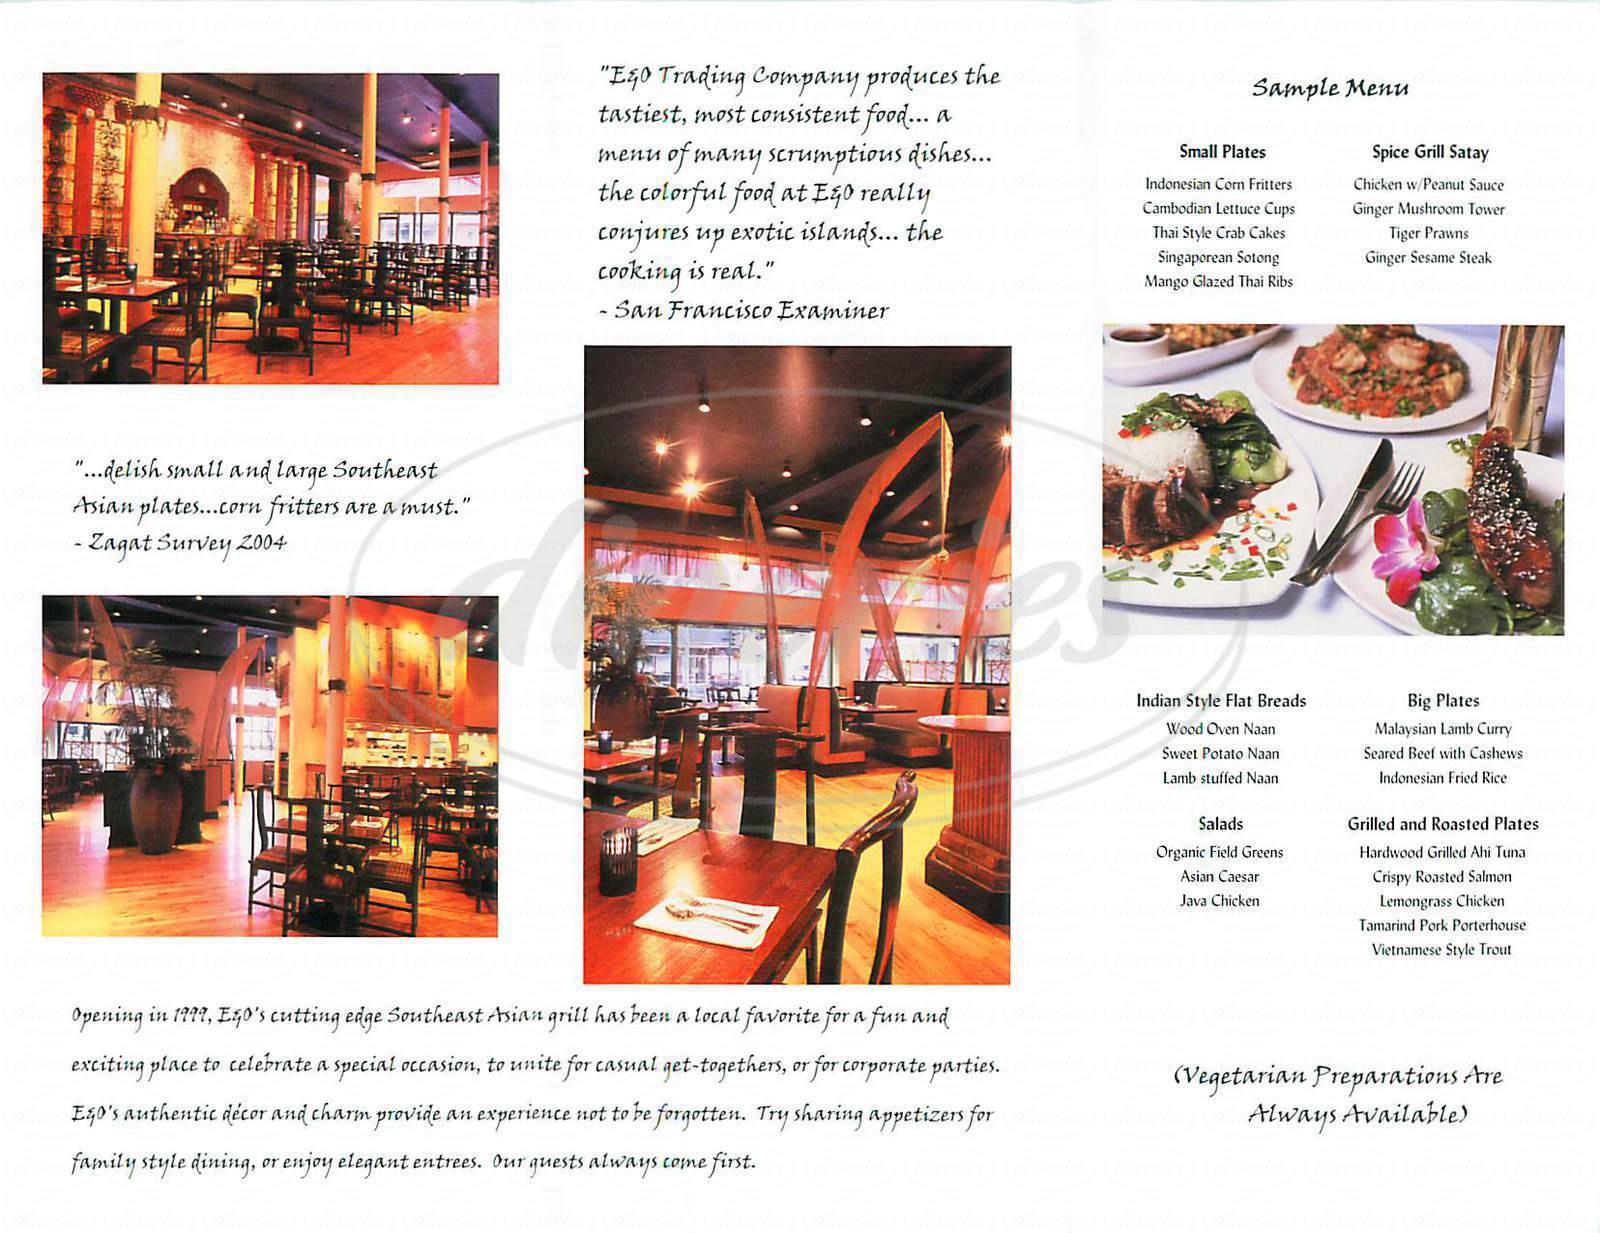 menu for E & O Trading Company